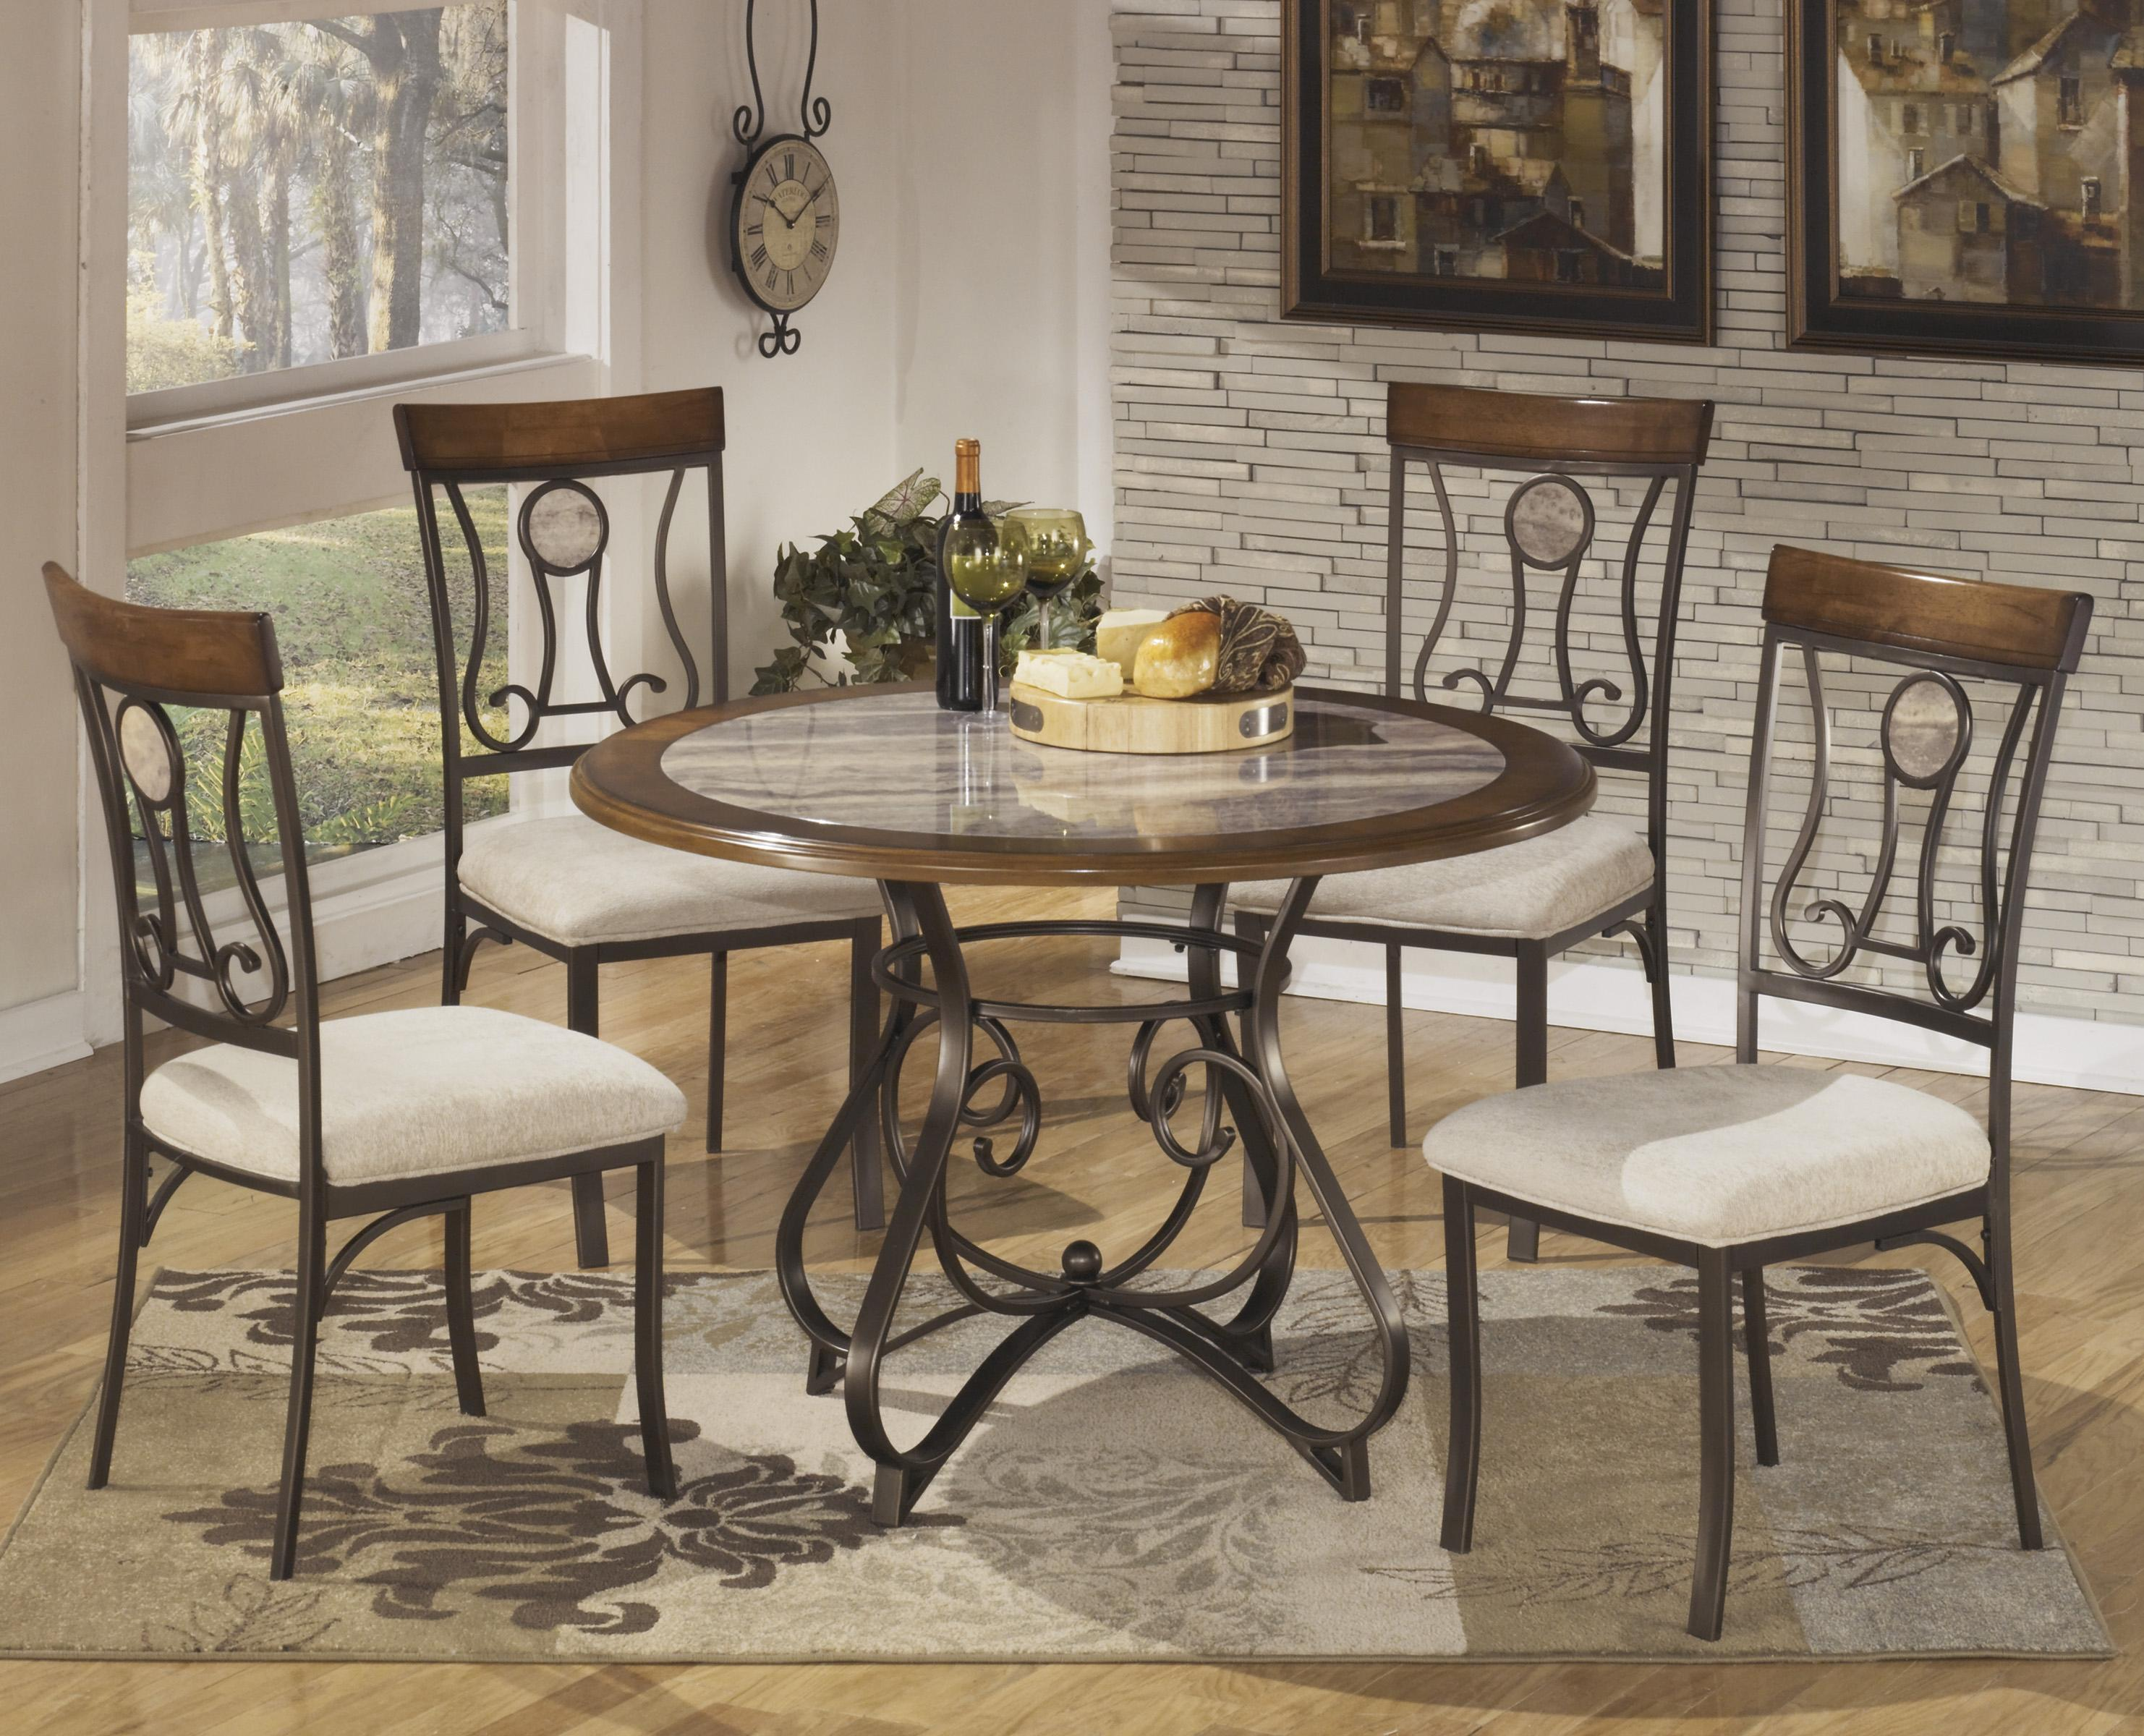 kitchen table chairs Signature Design by Ashley Hopstand 5 Piece Round Dining Table Set Item Number